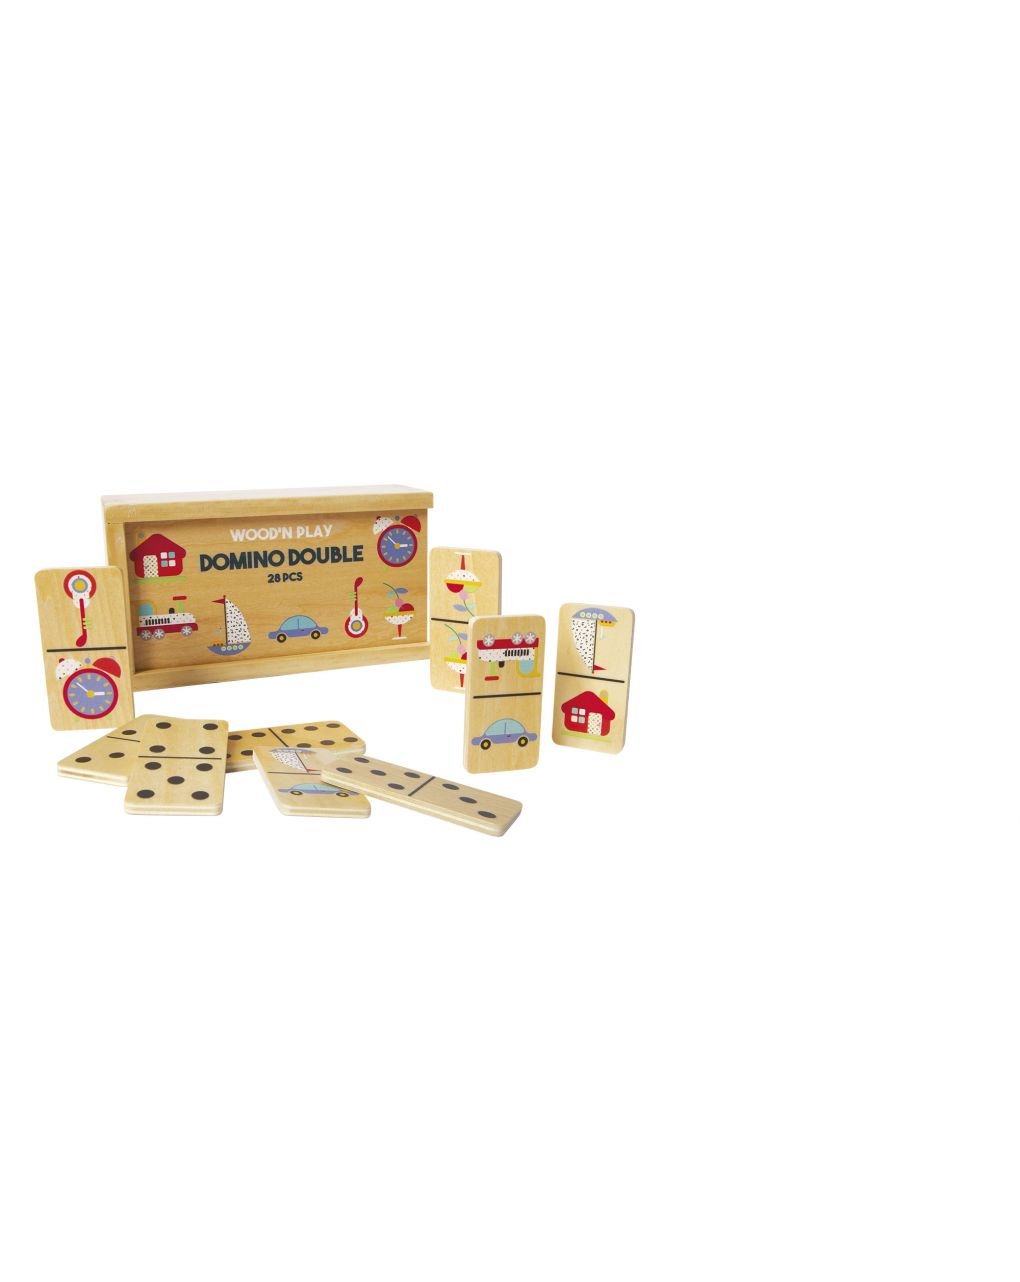 Wood'n play - domino double face - Wood'N'Play